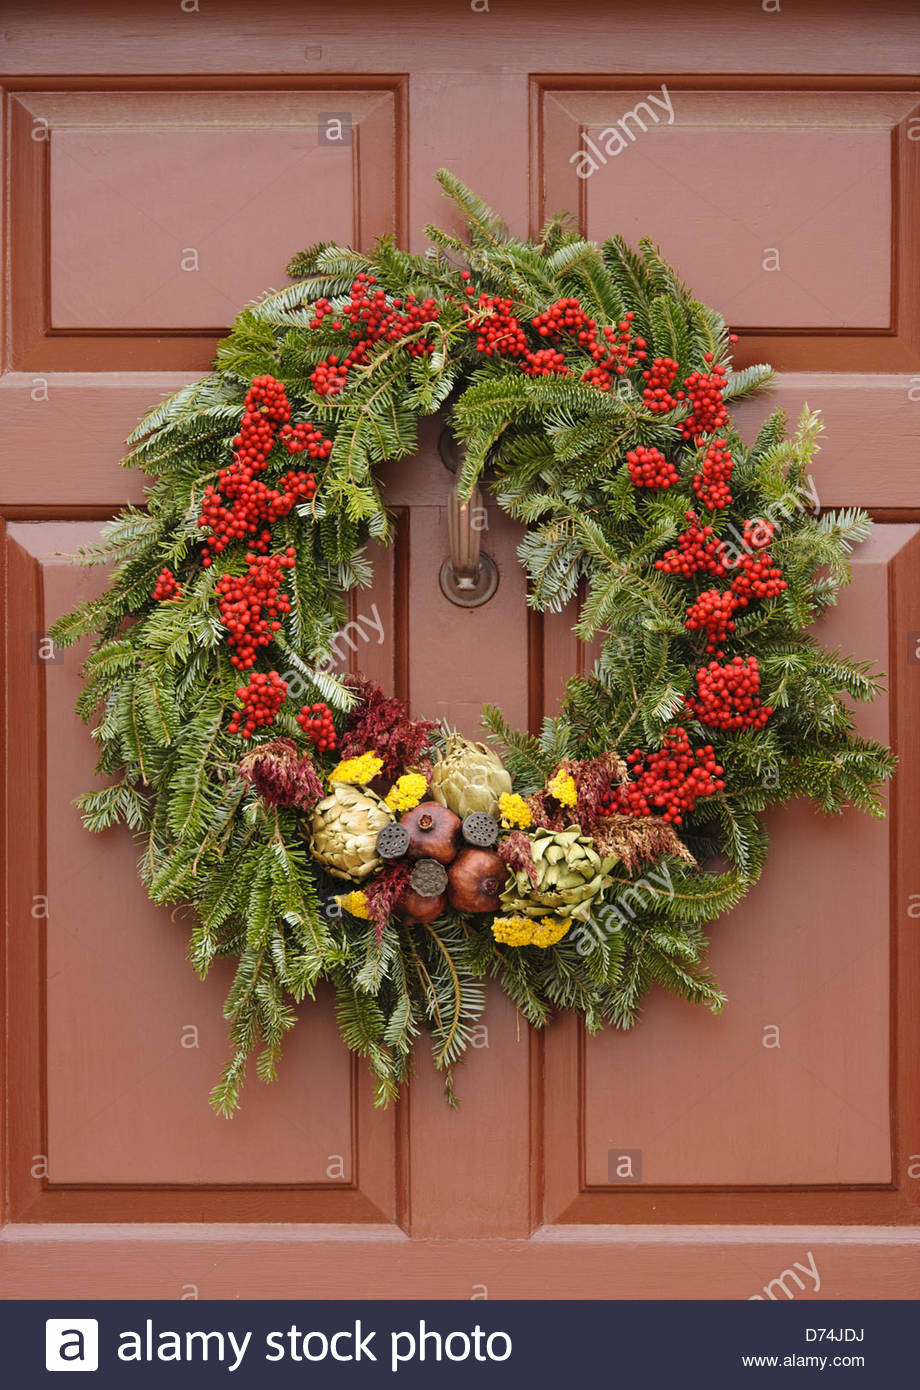 handmade christmas decorated wreaths hanging from a door williamsburg virginia usa - Williamsburg Decorated For Christmas